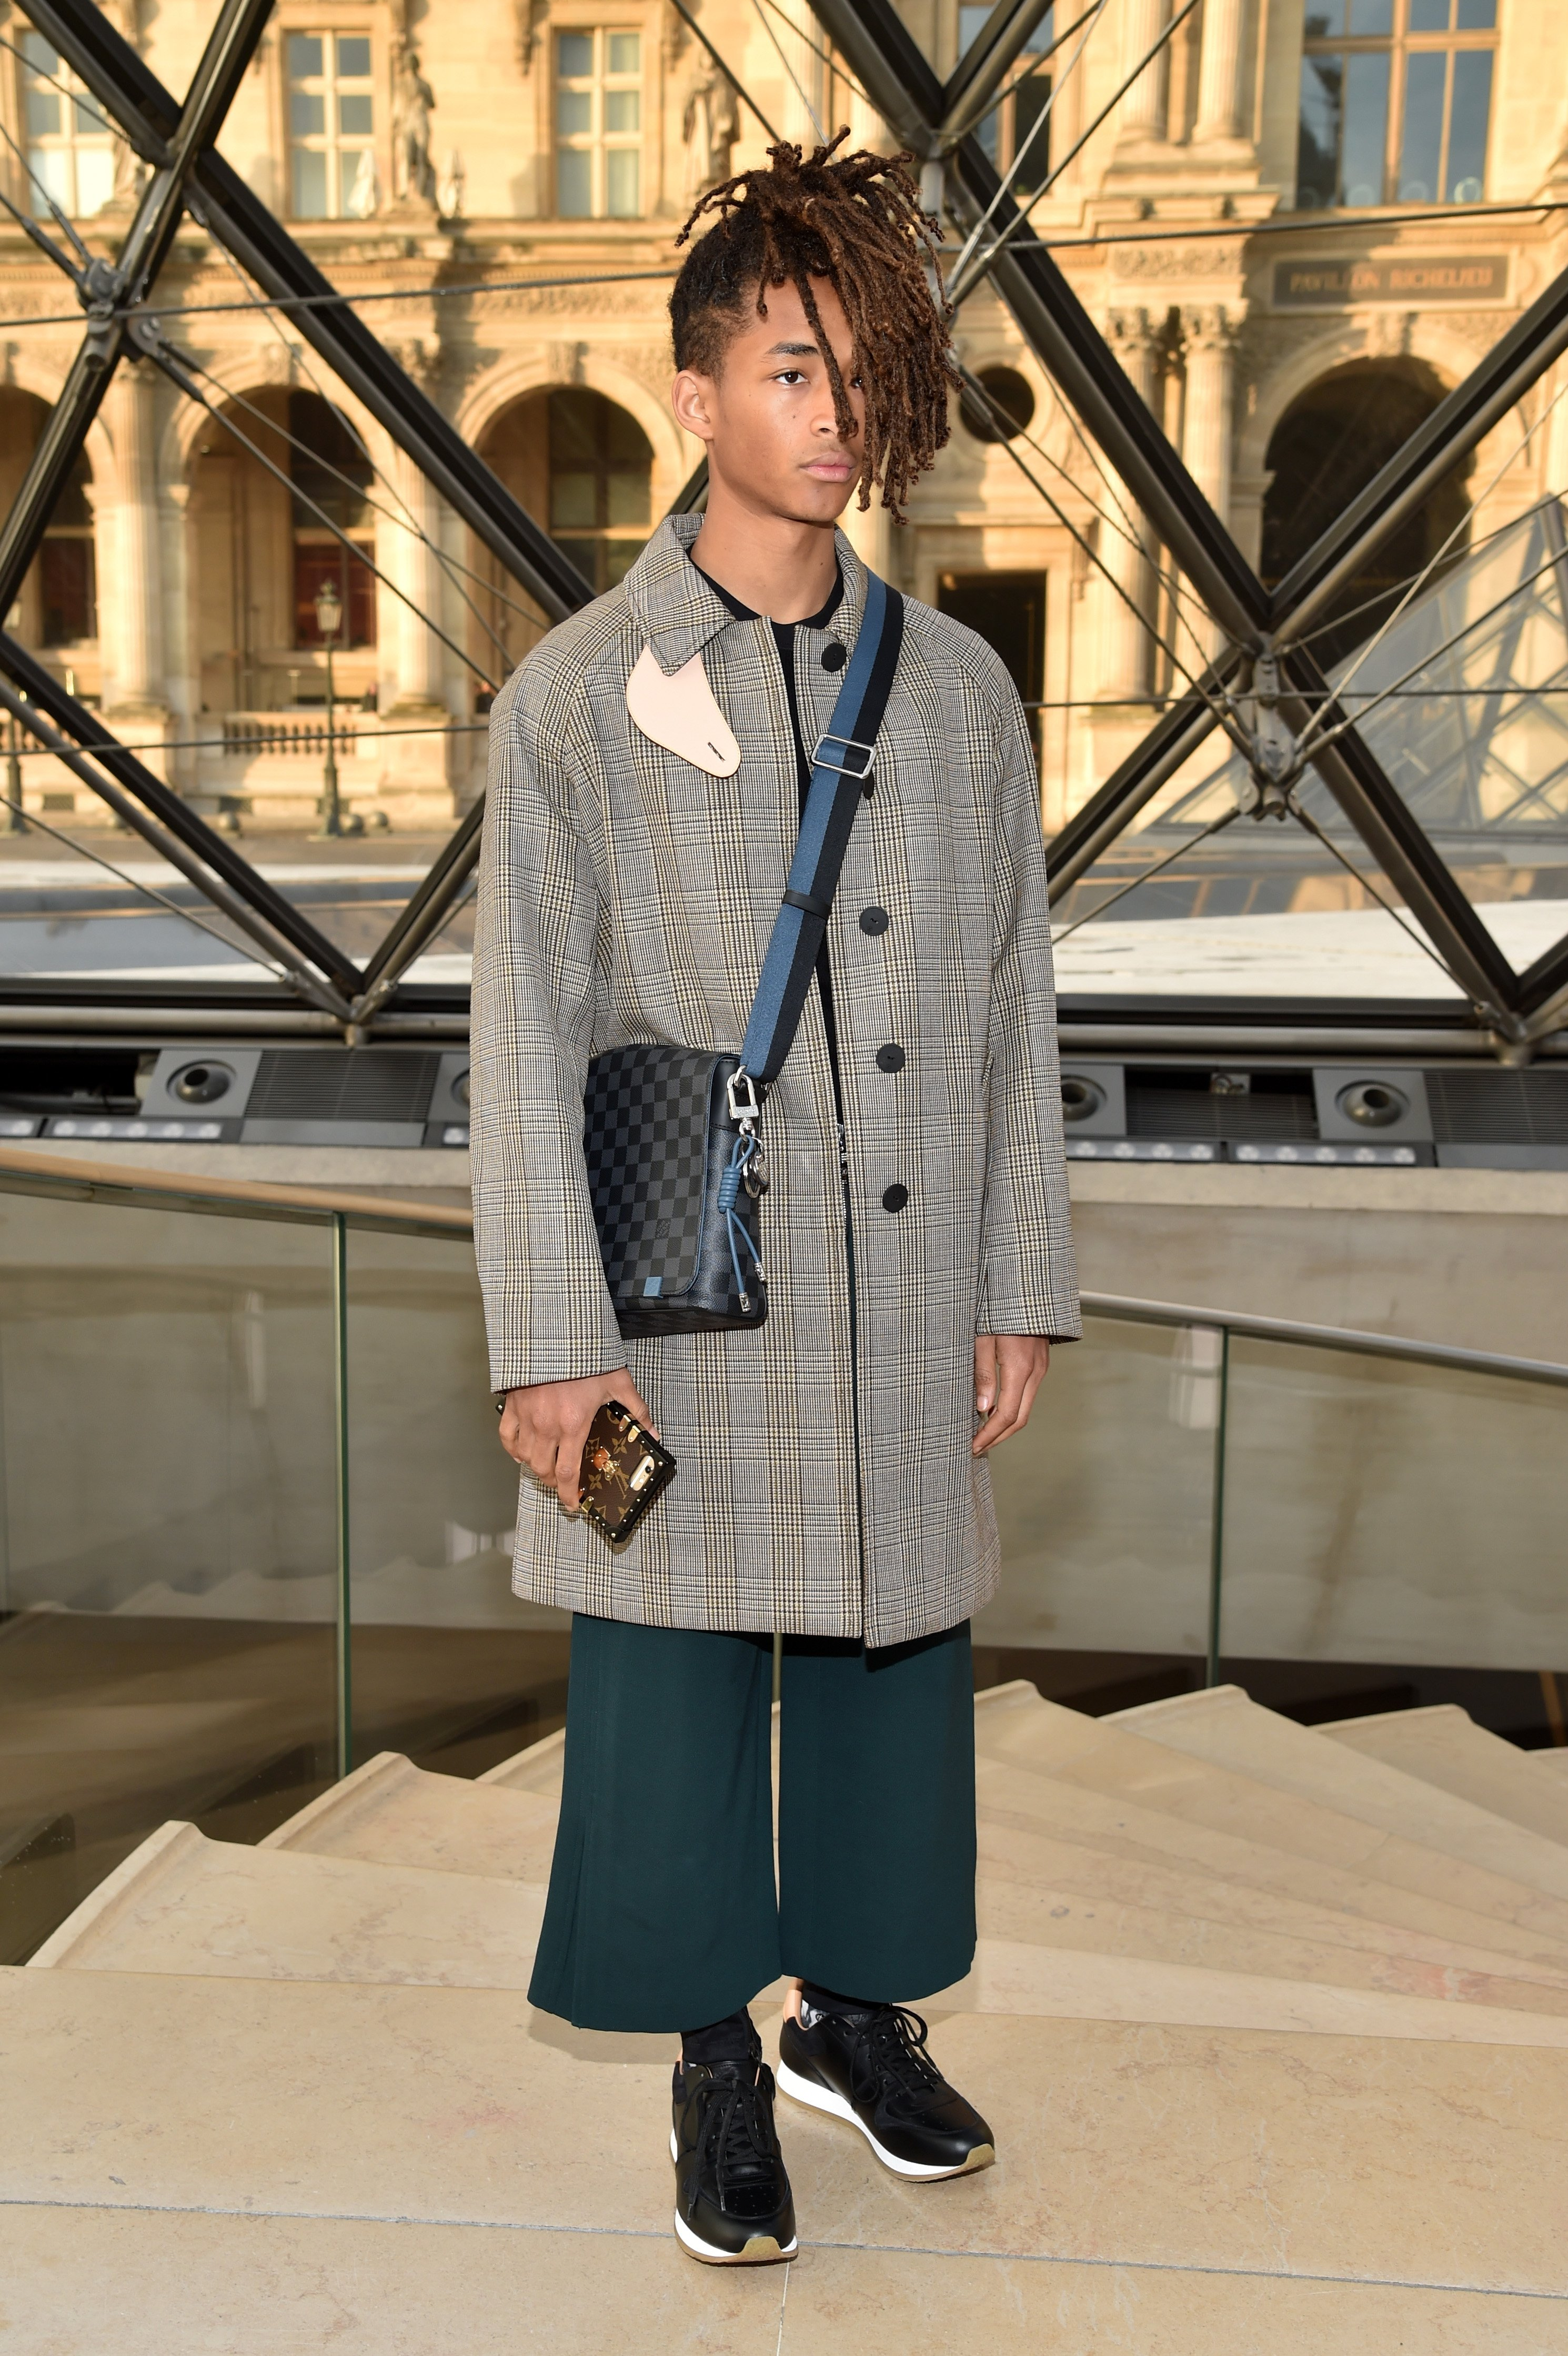 Image Credits: Getty Images / Pascal Le Segretain | Jaden Smith attends the Louis Vuitton show as part of the Paris Fashion Week Womenswear Fall/Winter 2017/2018 on March 7, 2017 in Paris, France.